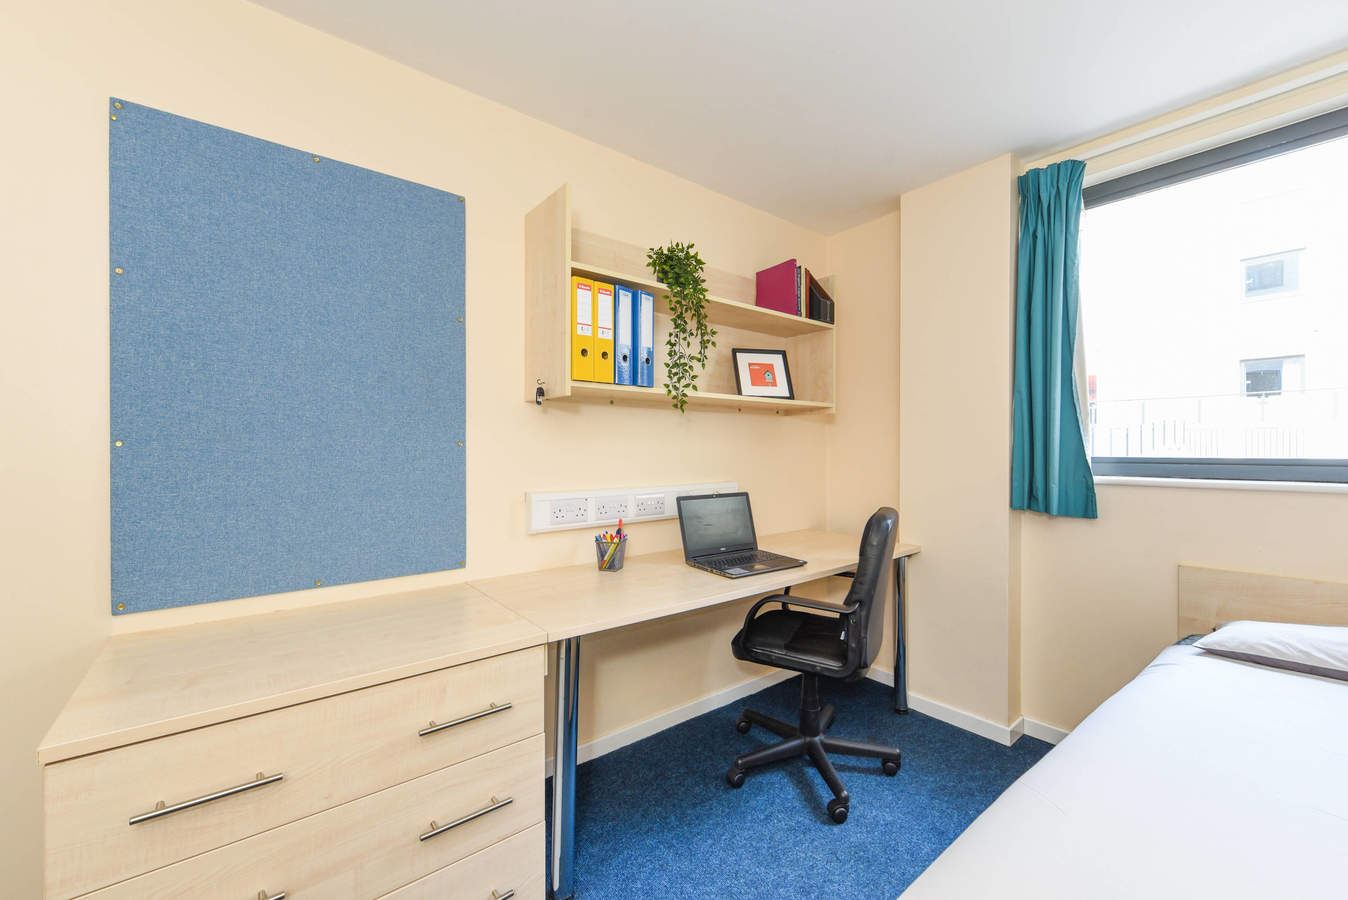 Nottingham_-_trinity_square_ensuite_1c-3_converted